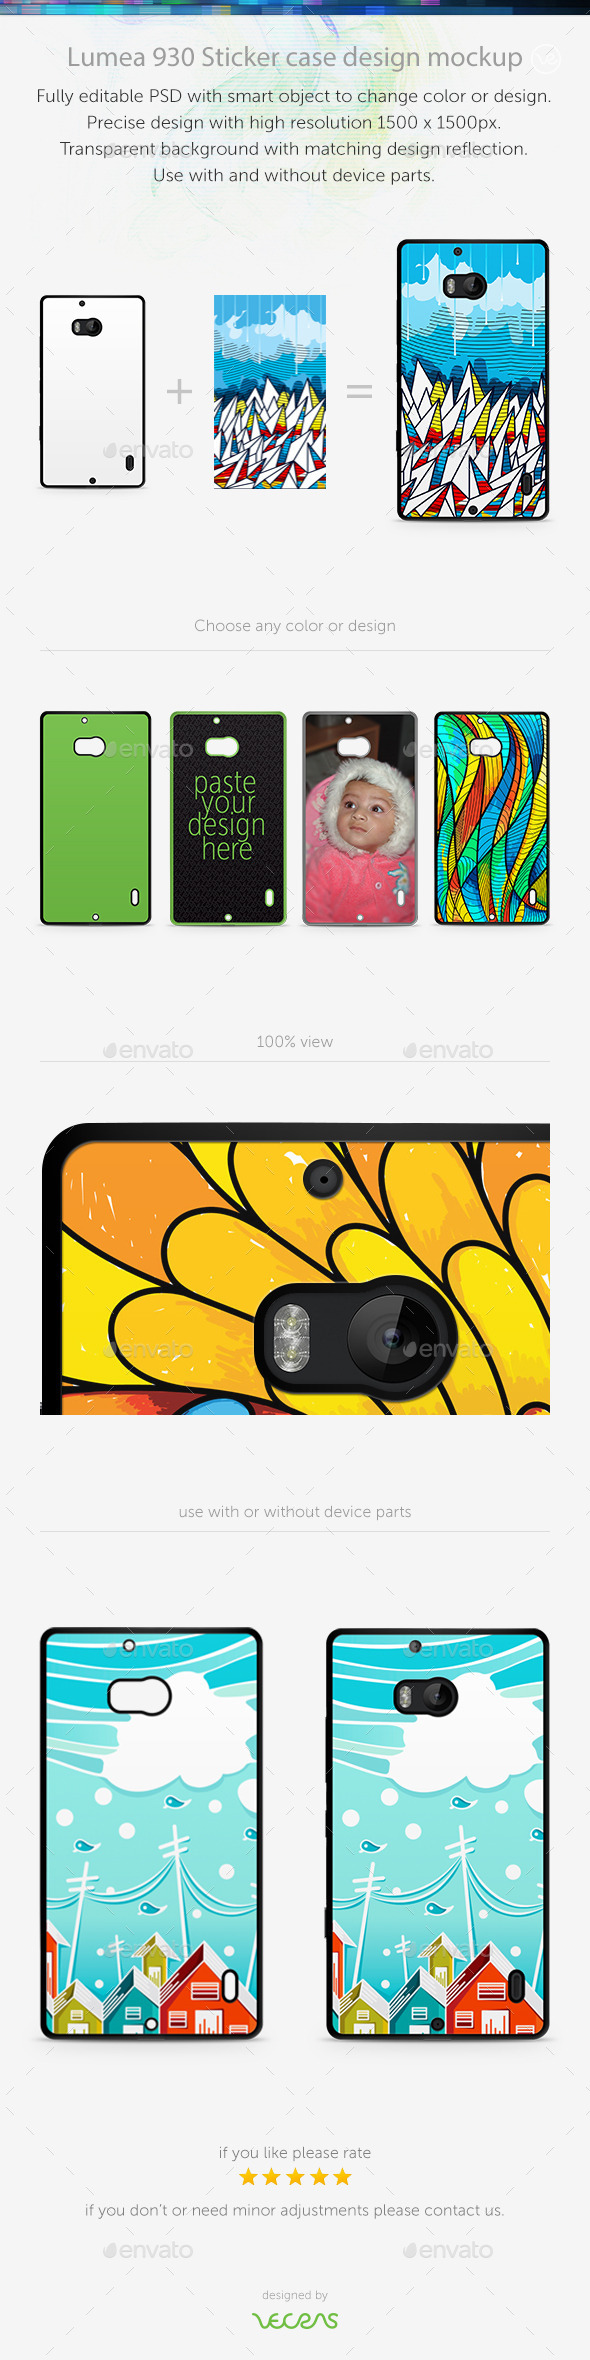 GraphicRiver Lumea 930 Sticker Case Design Mockup 10832575